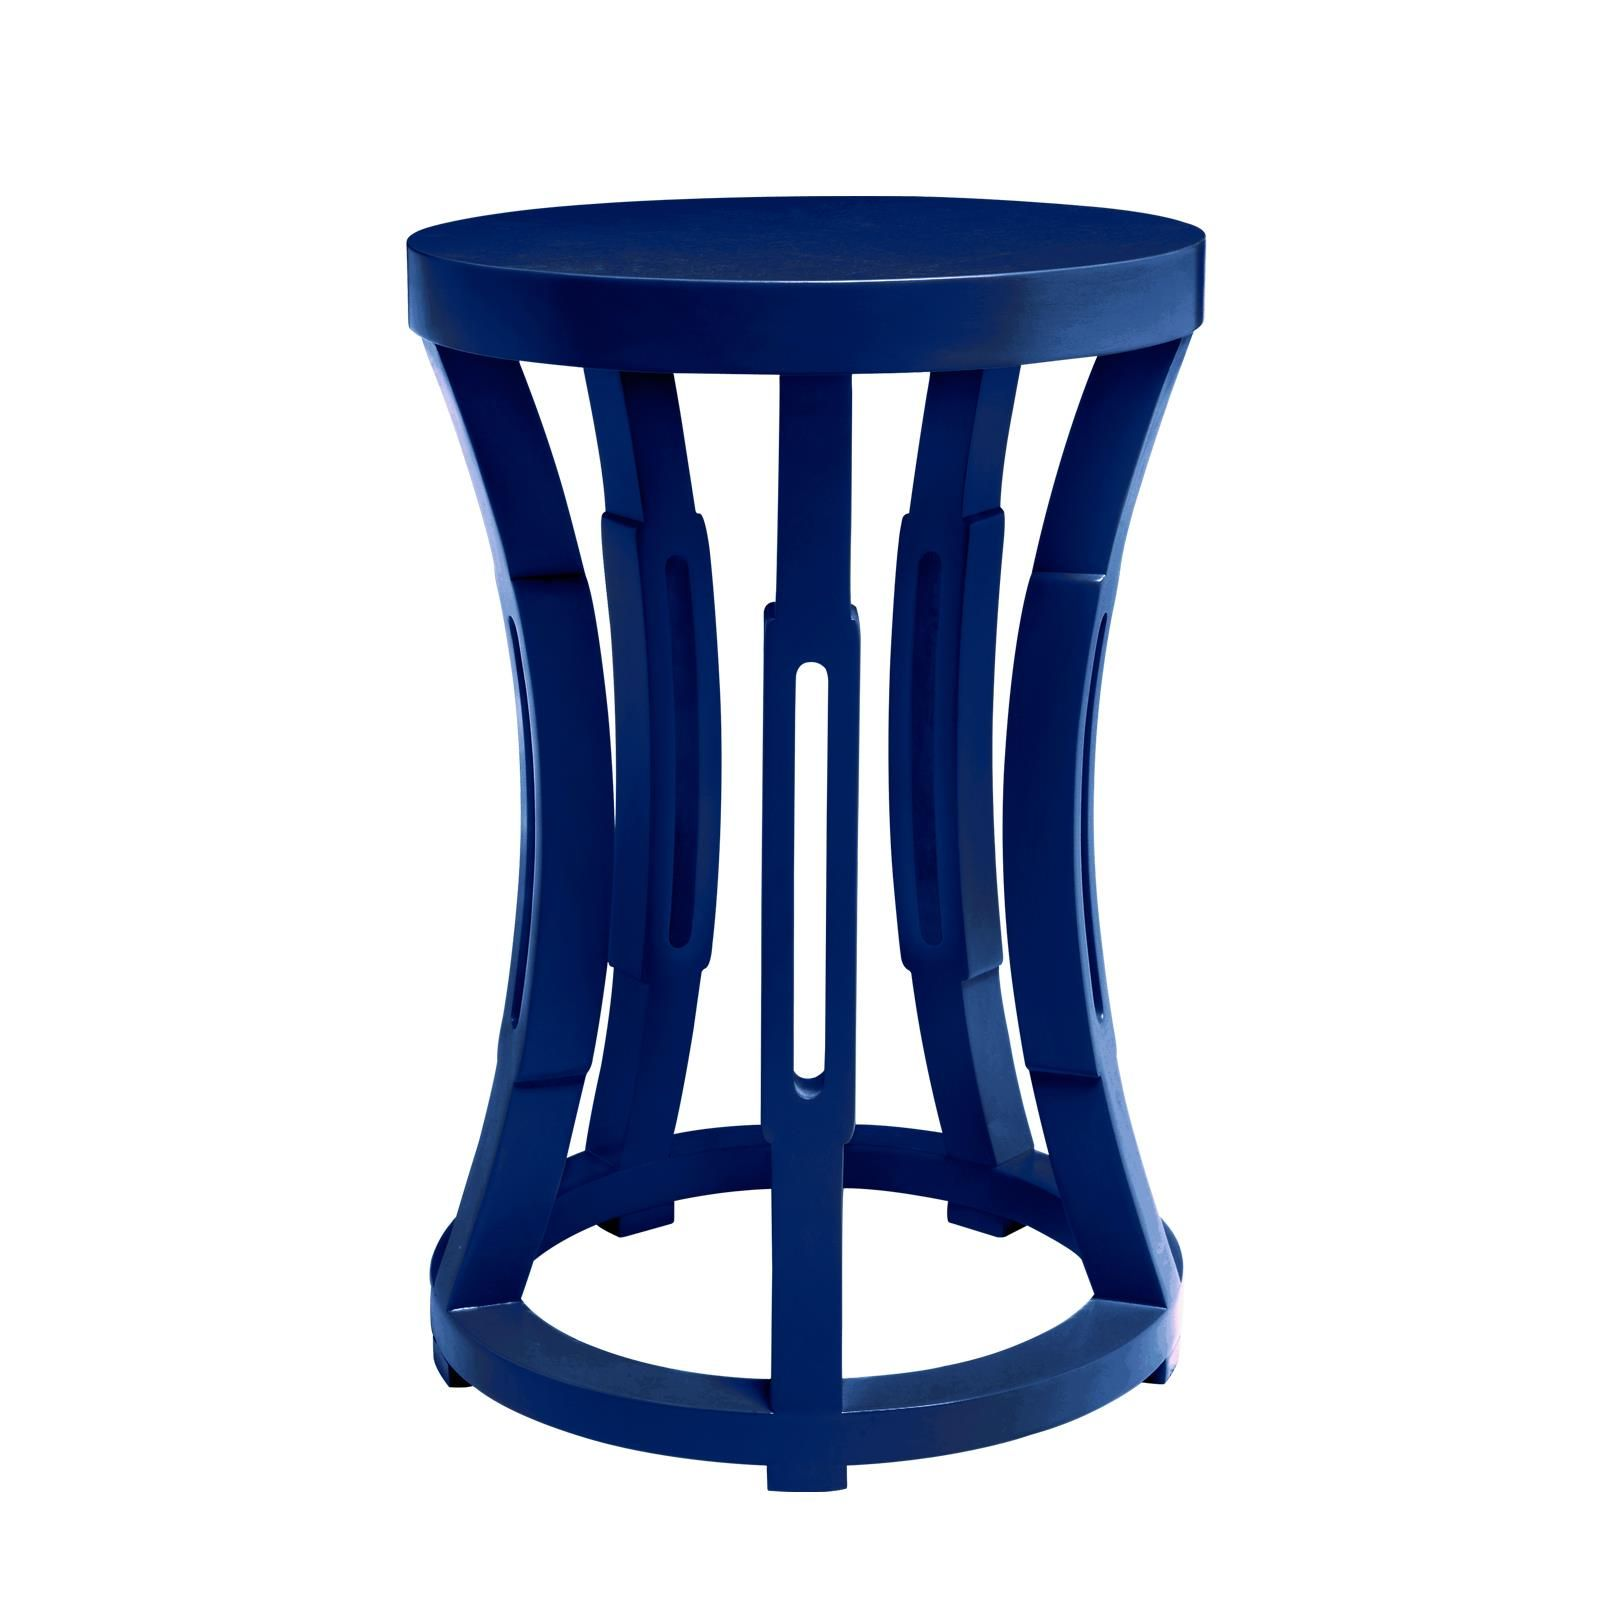 strikingly design blue accent table hourglass stool side navy bungalow amit palace teal cool ideas ameriwood queensbury with drawers the mirrored tray resin wicker furniture diy